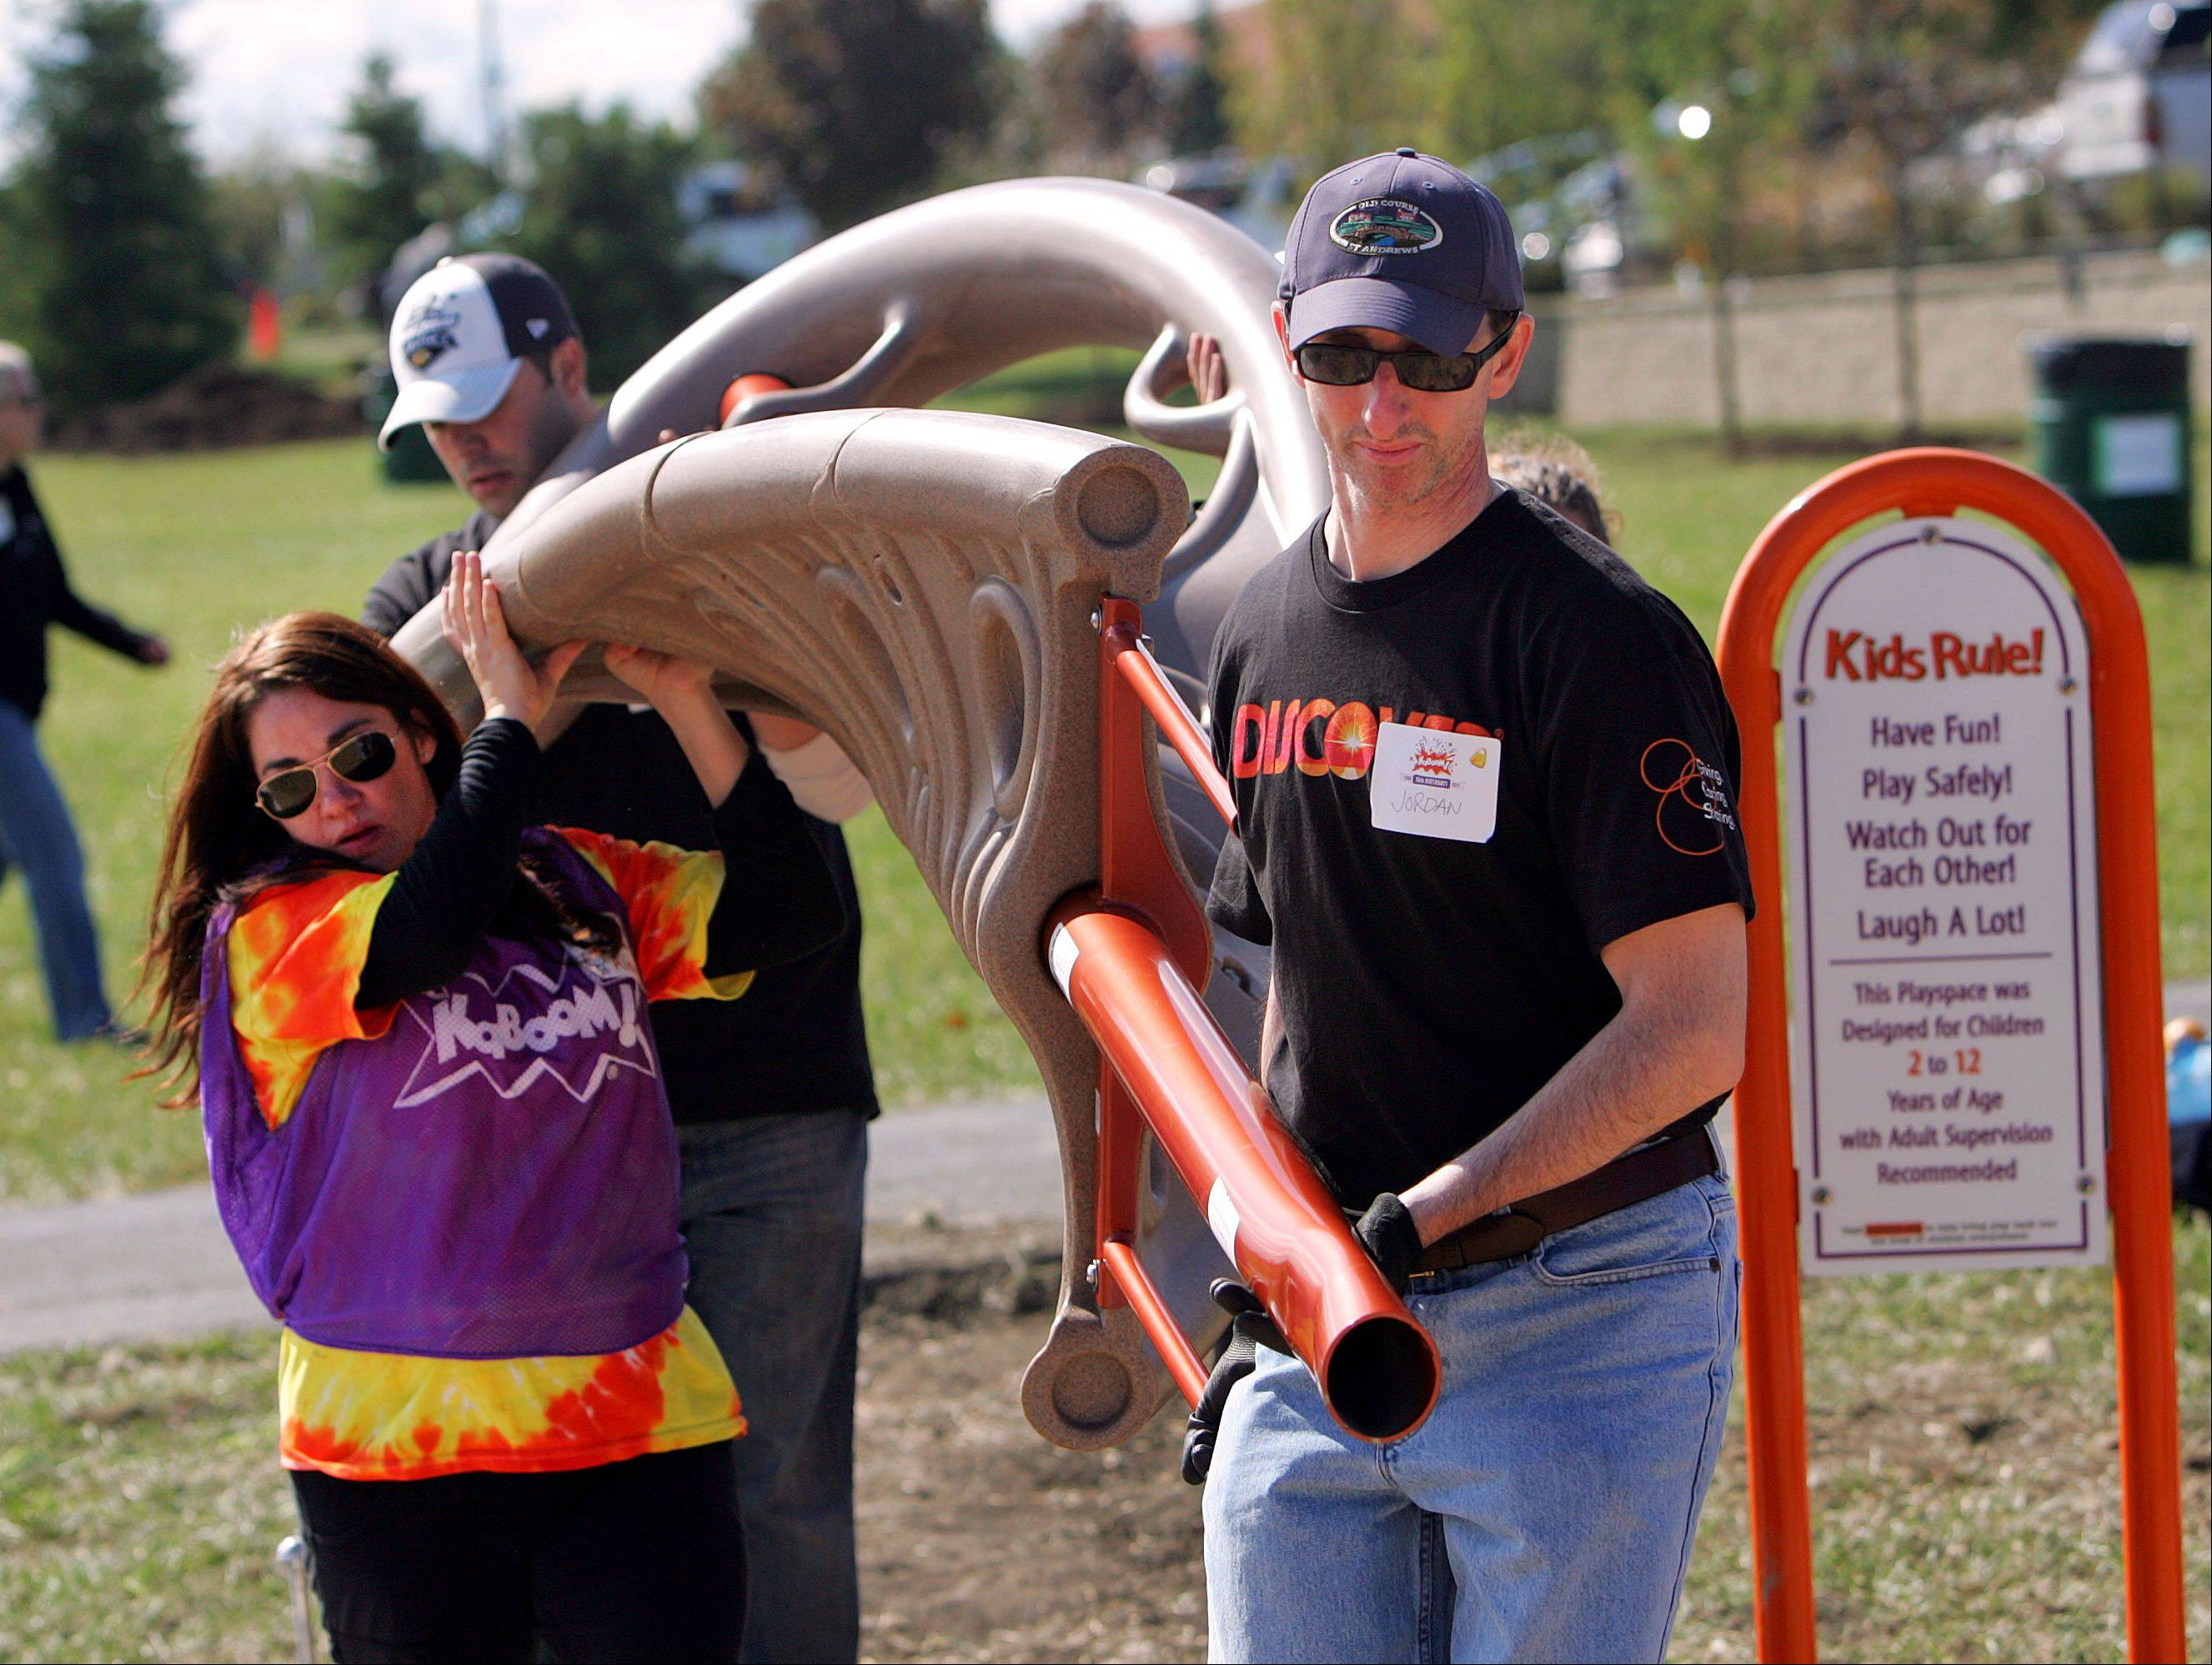 Discover employees Aimee Brohl, left, Joe Curtis, Jordan Razowsky and Angie Smith carry a piece of playground equipment Friday during construction of a new playground at the Round Lake Sports Complex. More than 500 volunteers from Discover, the Round Lake Area Park District, Friends of the Round Lake Area Parks Foundation and KaBOOM! joined forces on the project.